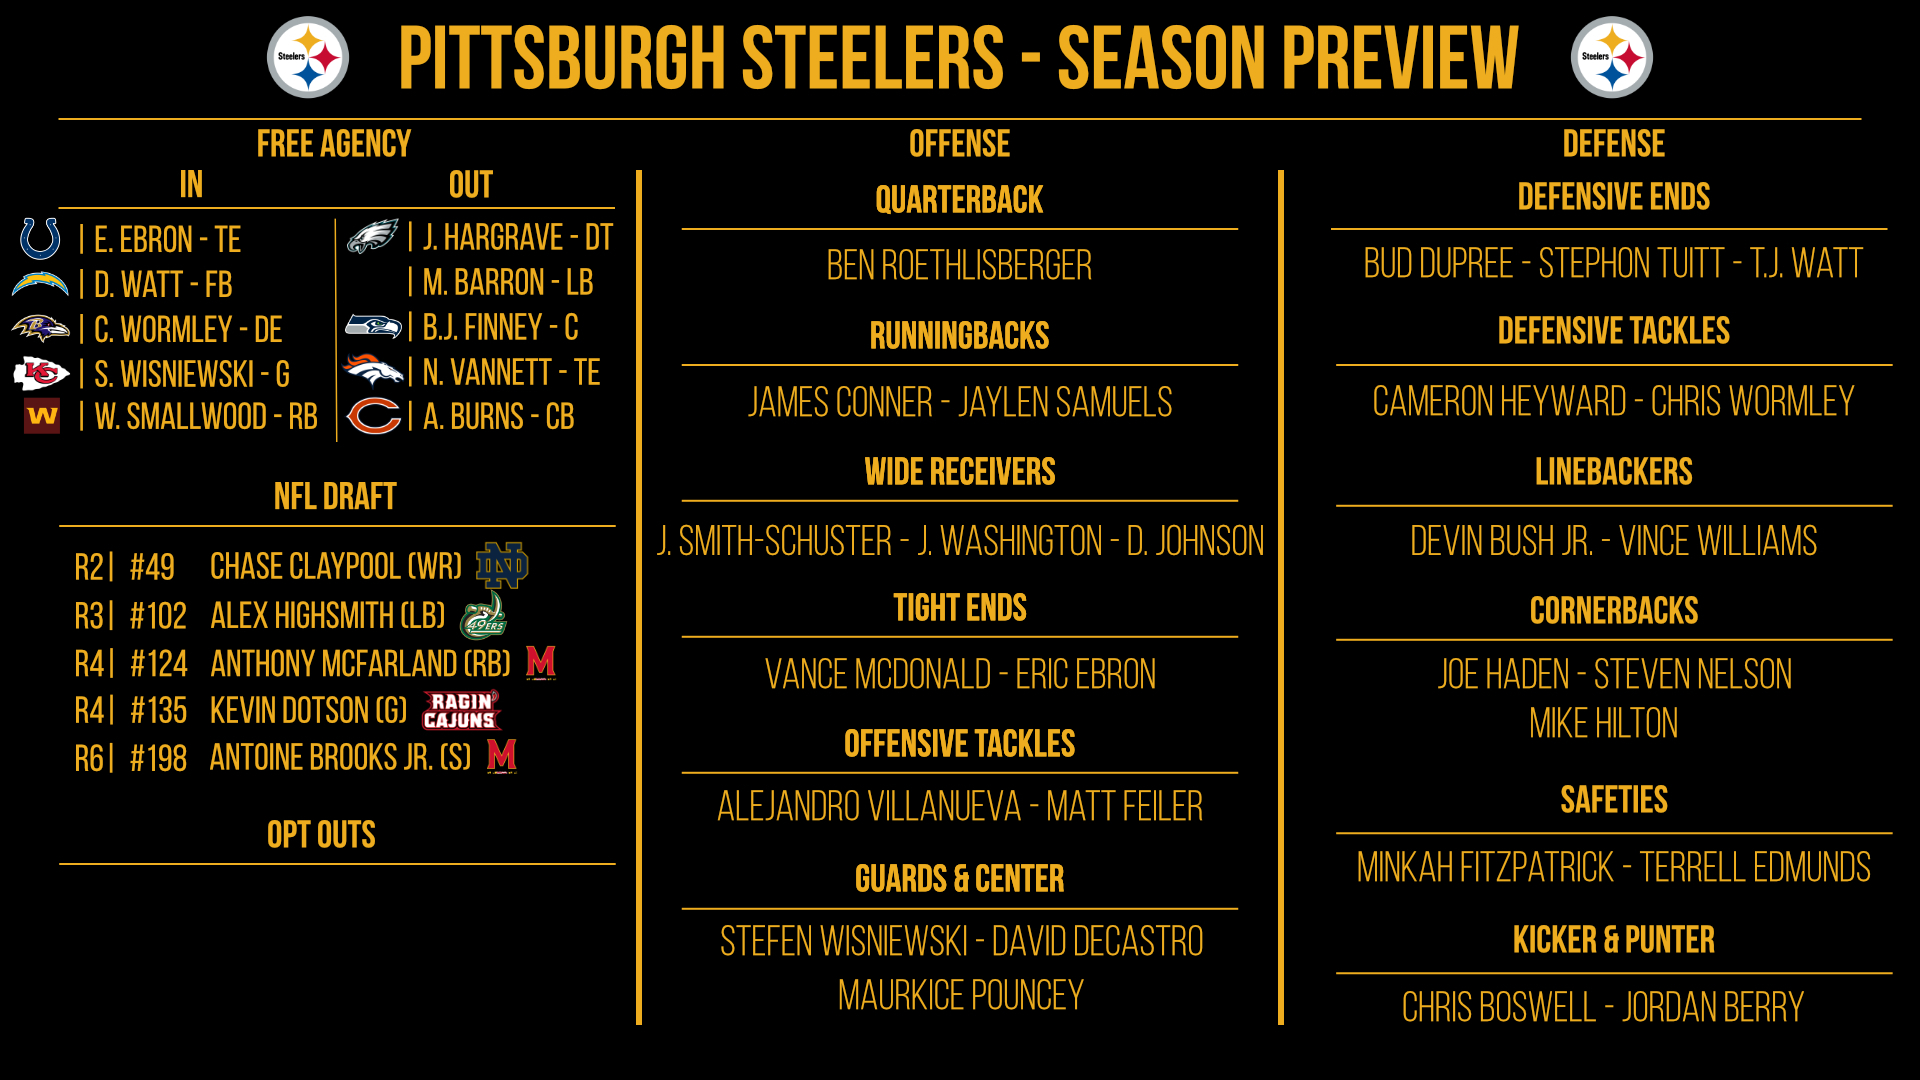 Pittsburgh Steelers preview